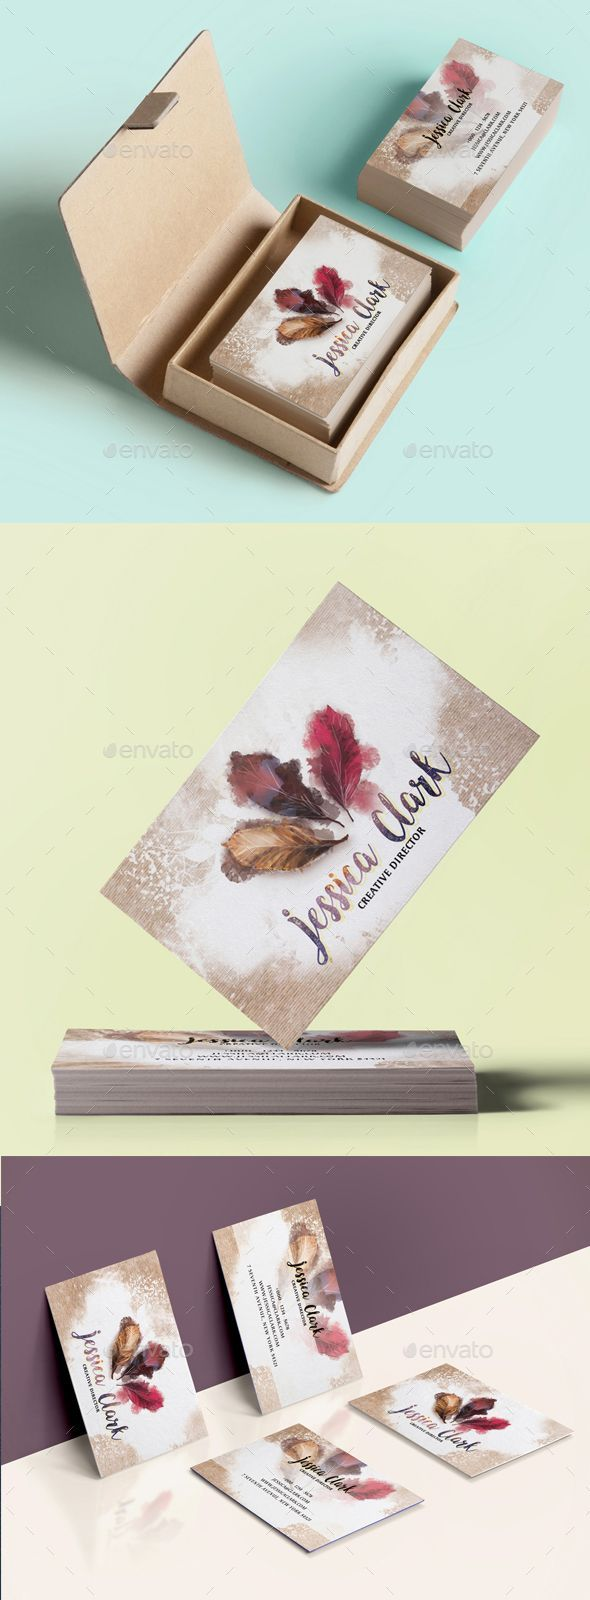 Warm Watercolor Business Card - Creative #Business #Cards Download here:  https://graphicriver.net/item/warm-watercolor-business-card/18750121?ref=alena994